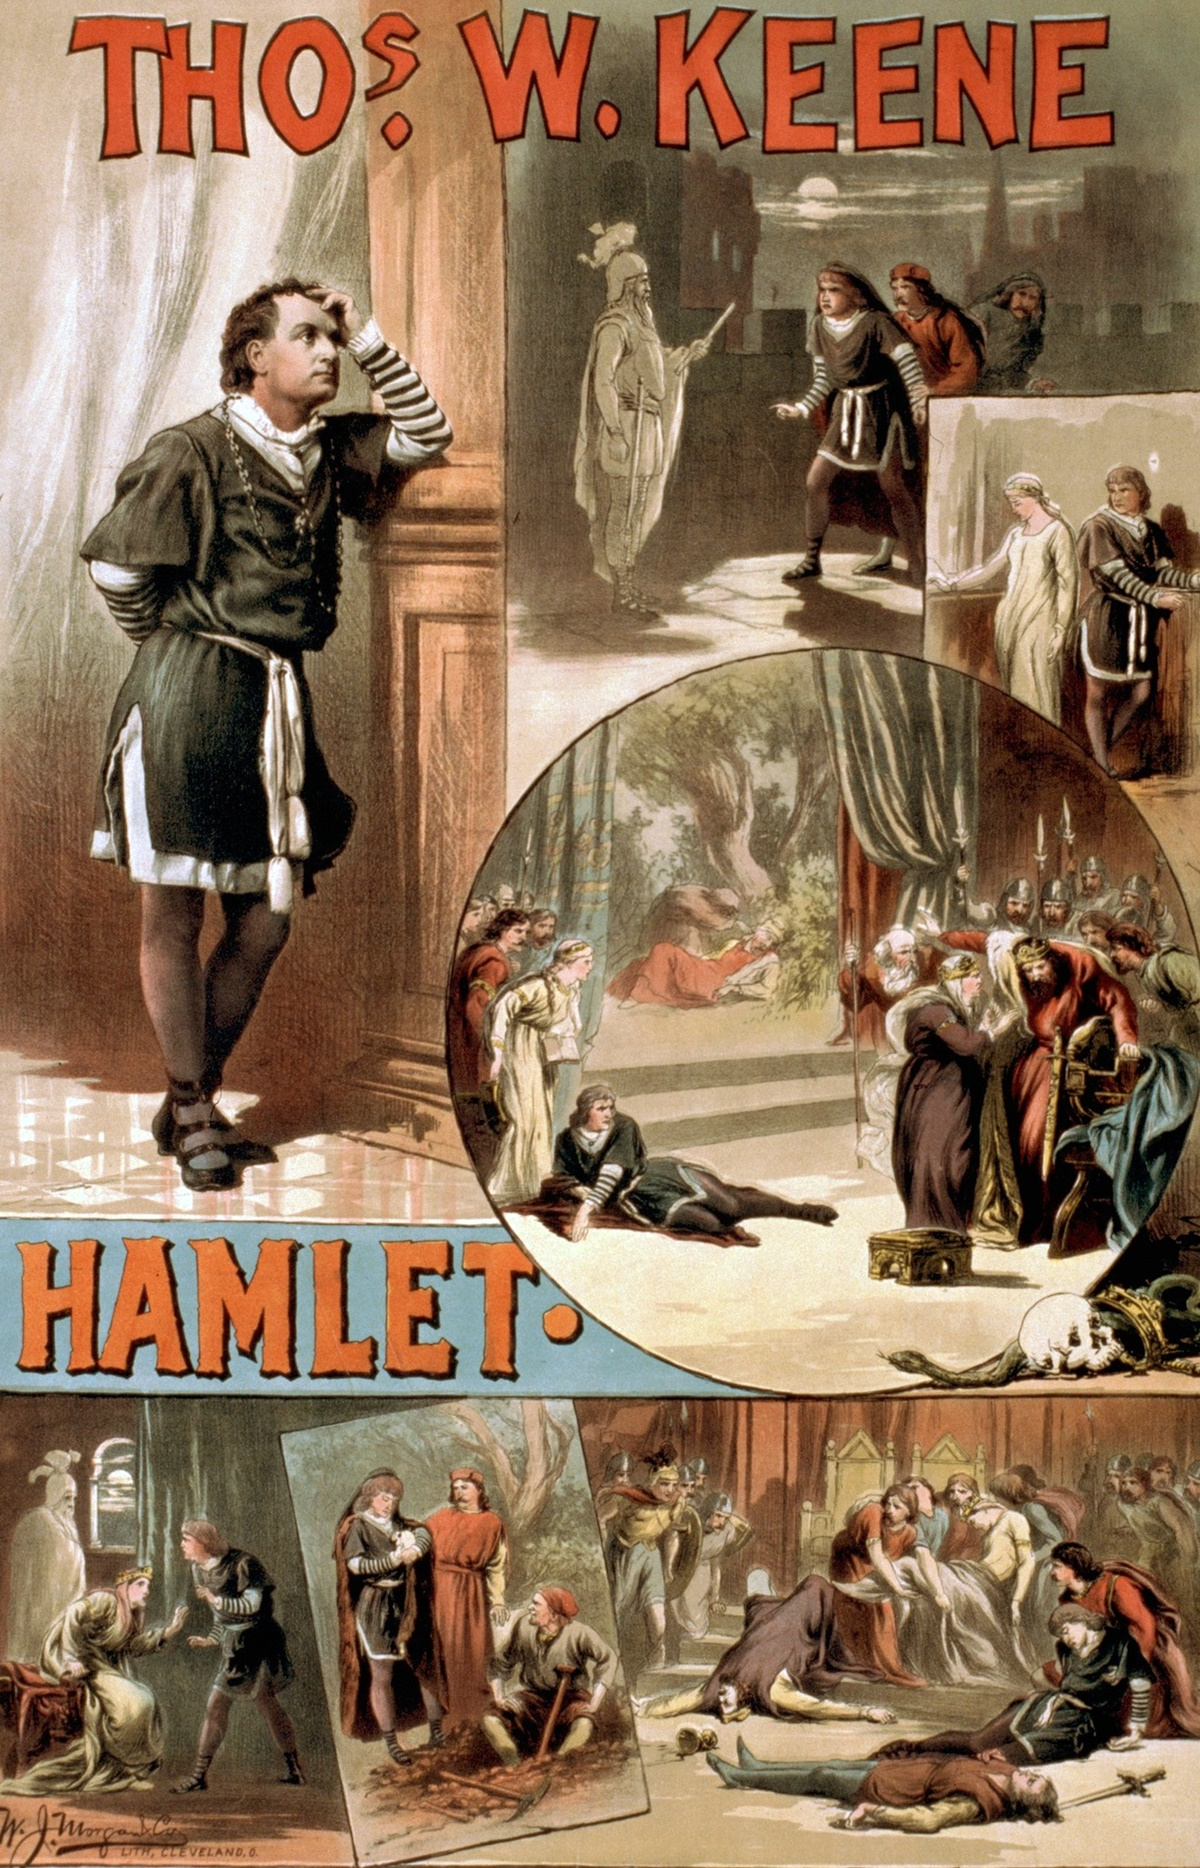 Shakespeare Quotes On Friendship, theater poster of Hamlet, books